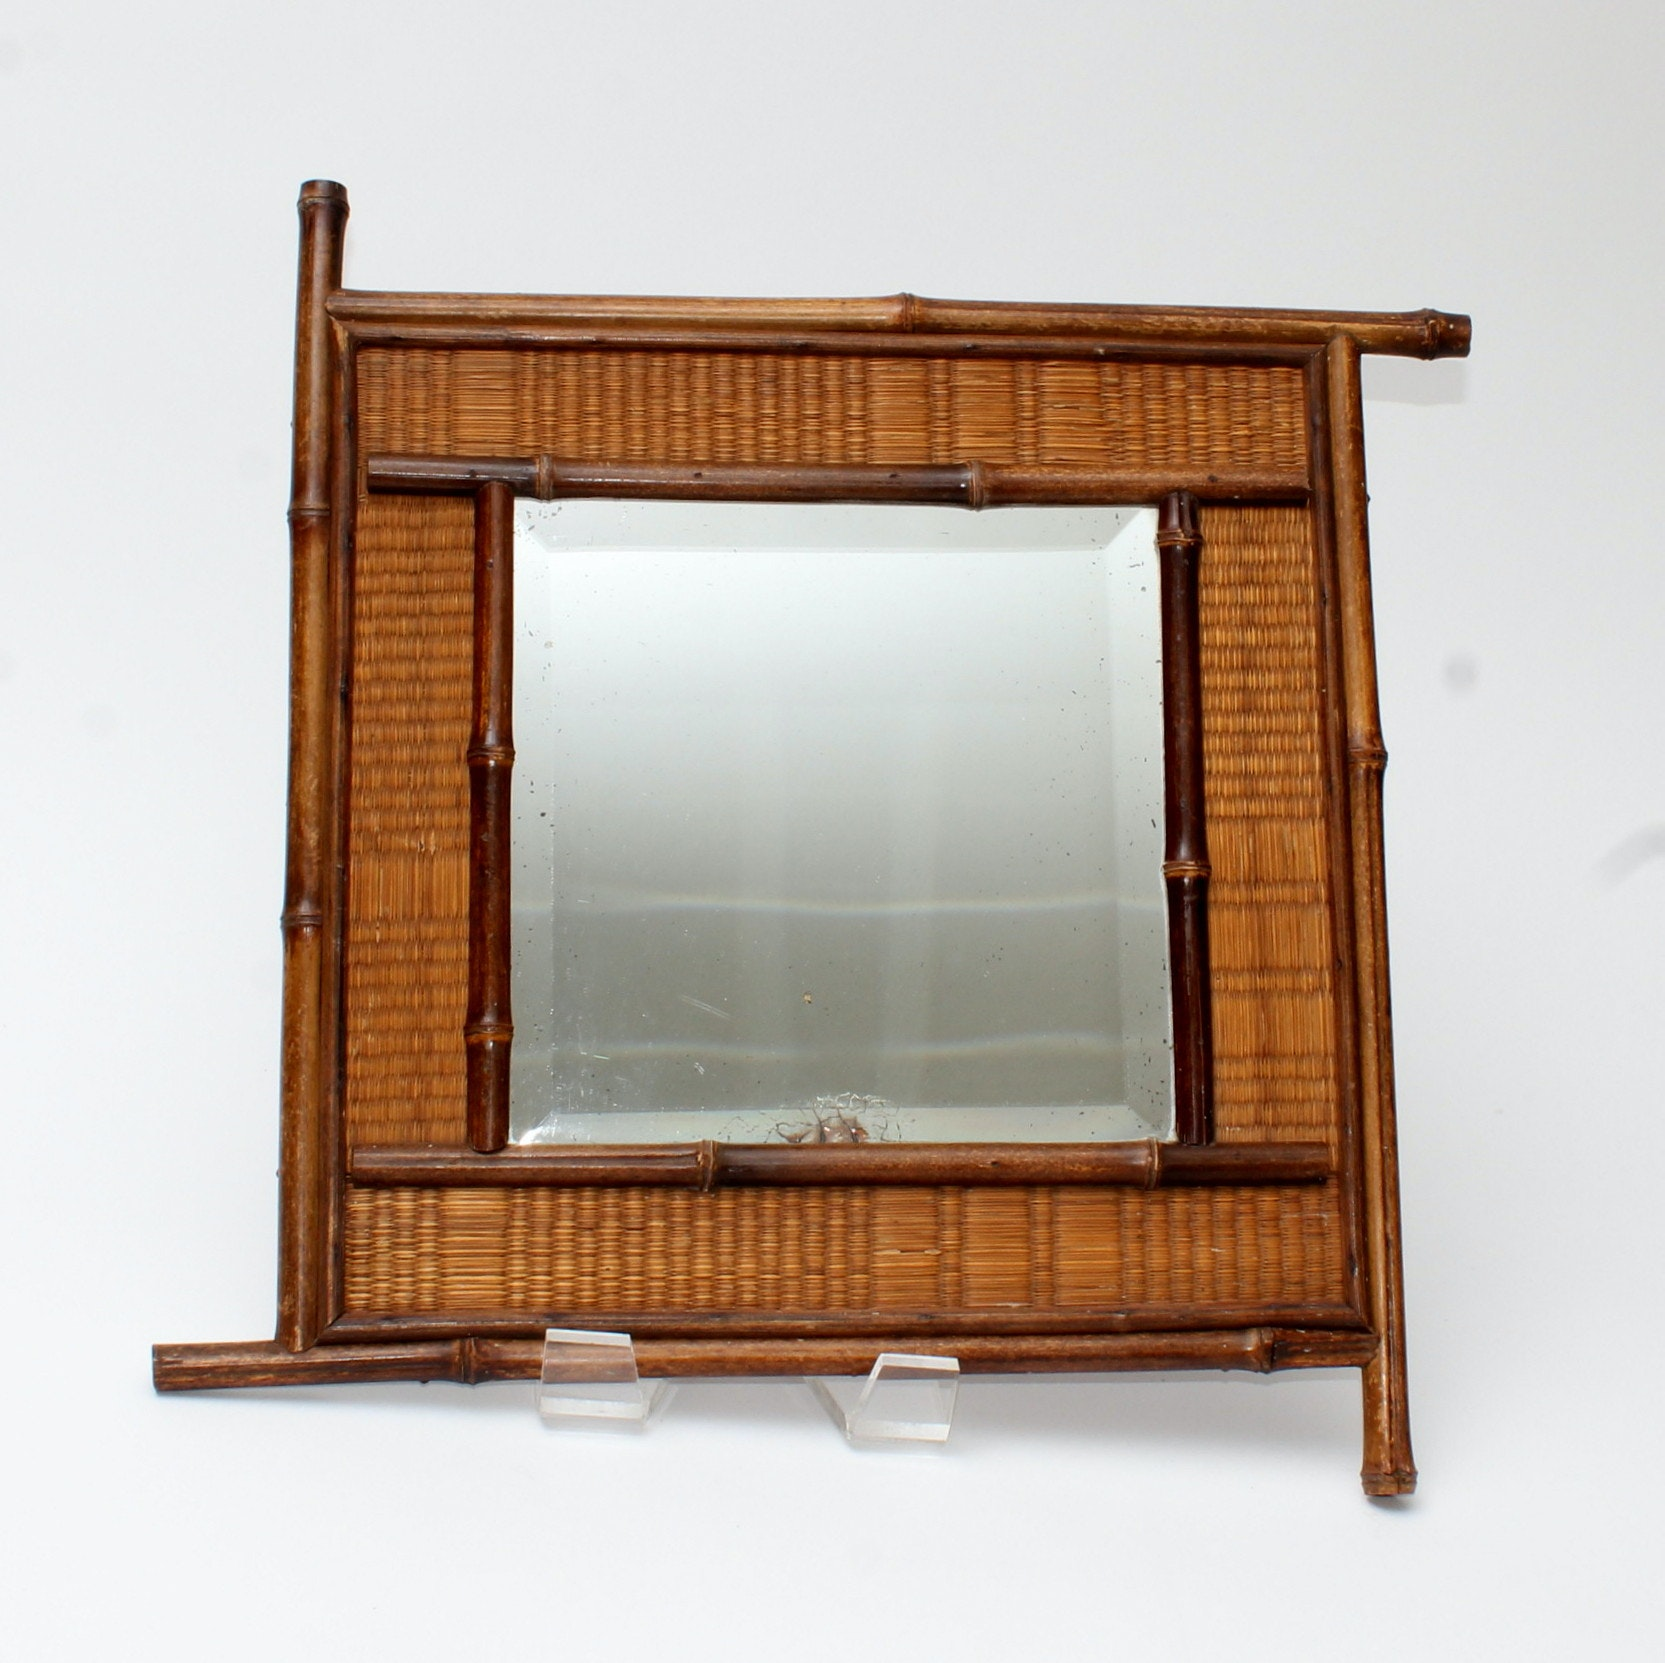 Vintage Wall Mirror with Seagrass and Bamboo Frame